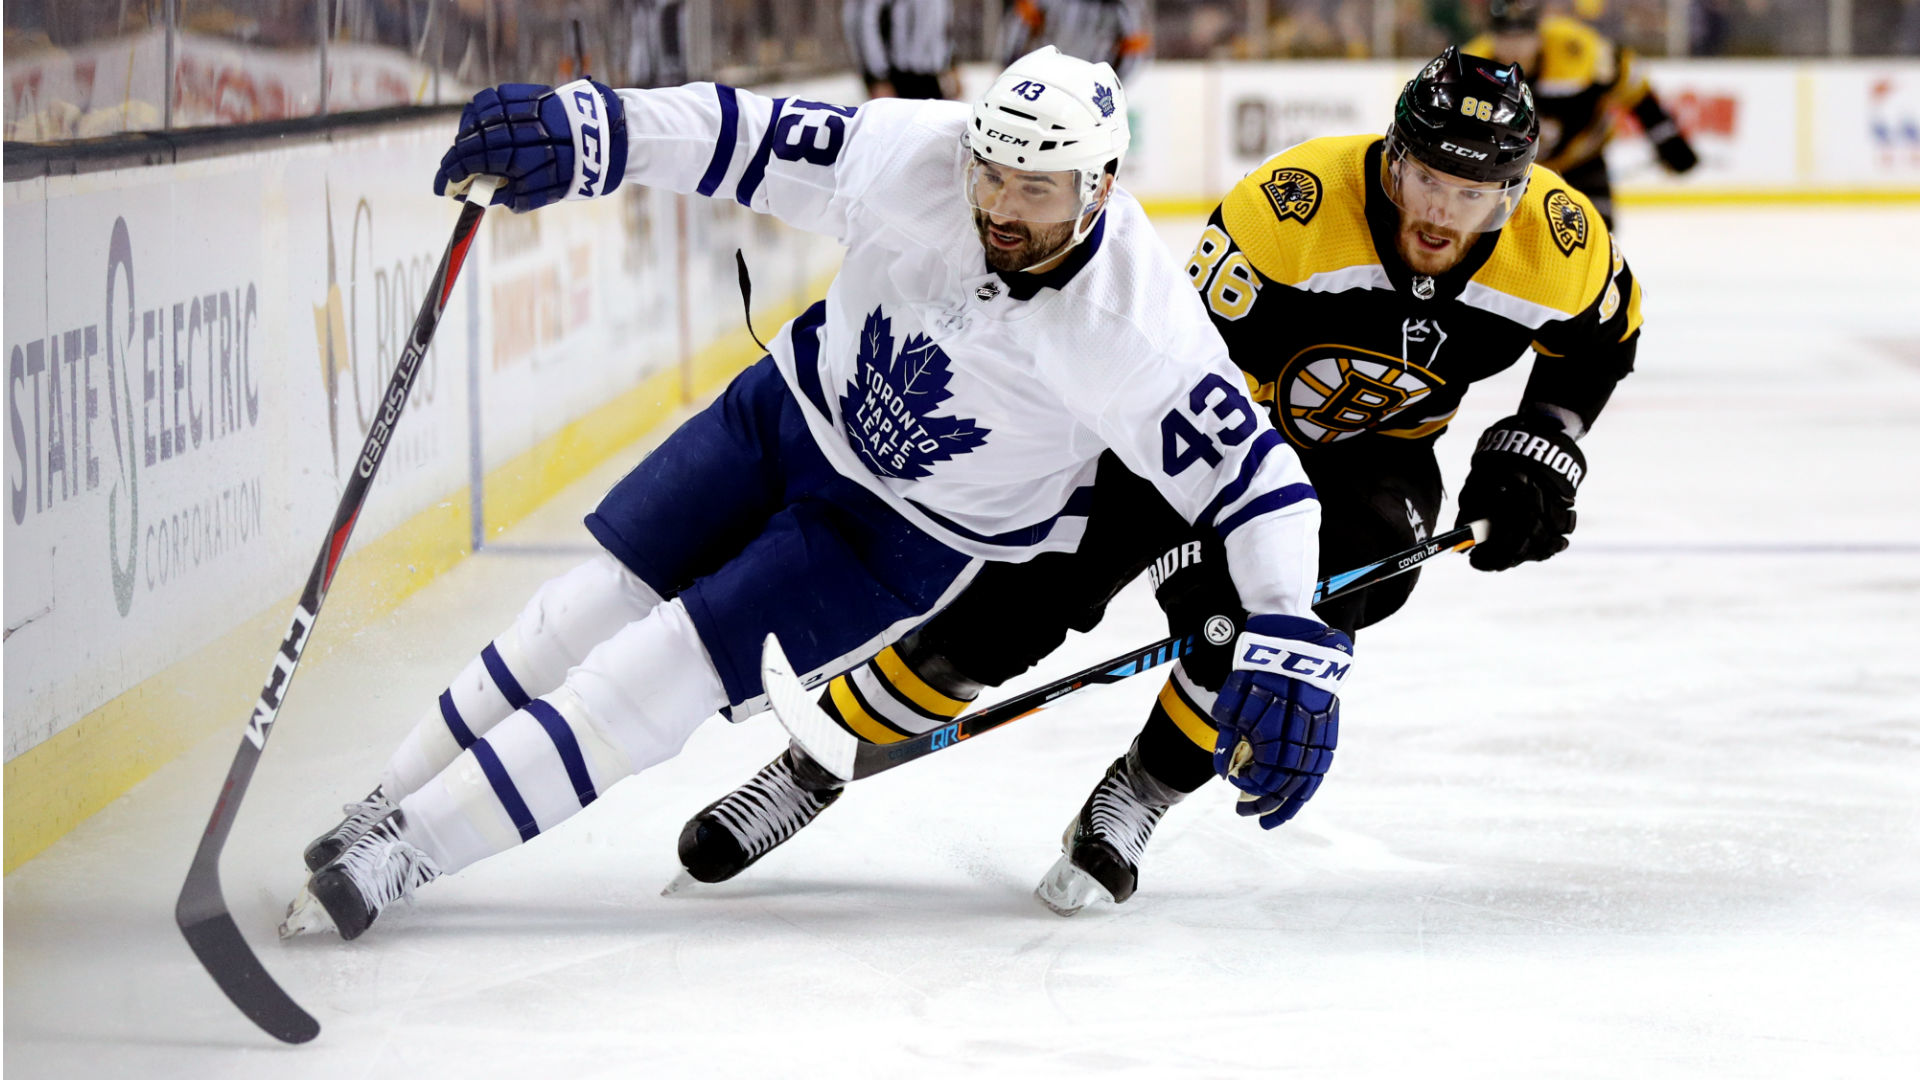 Maple Leafs 4, Bruins 2: Toronto forces Game 7 in Boston